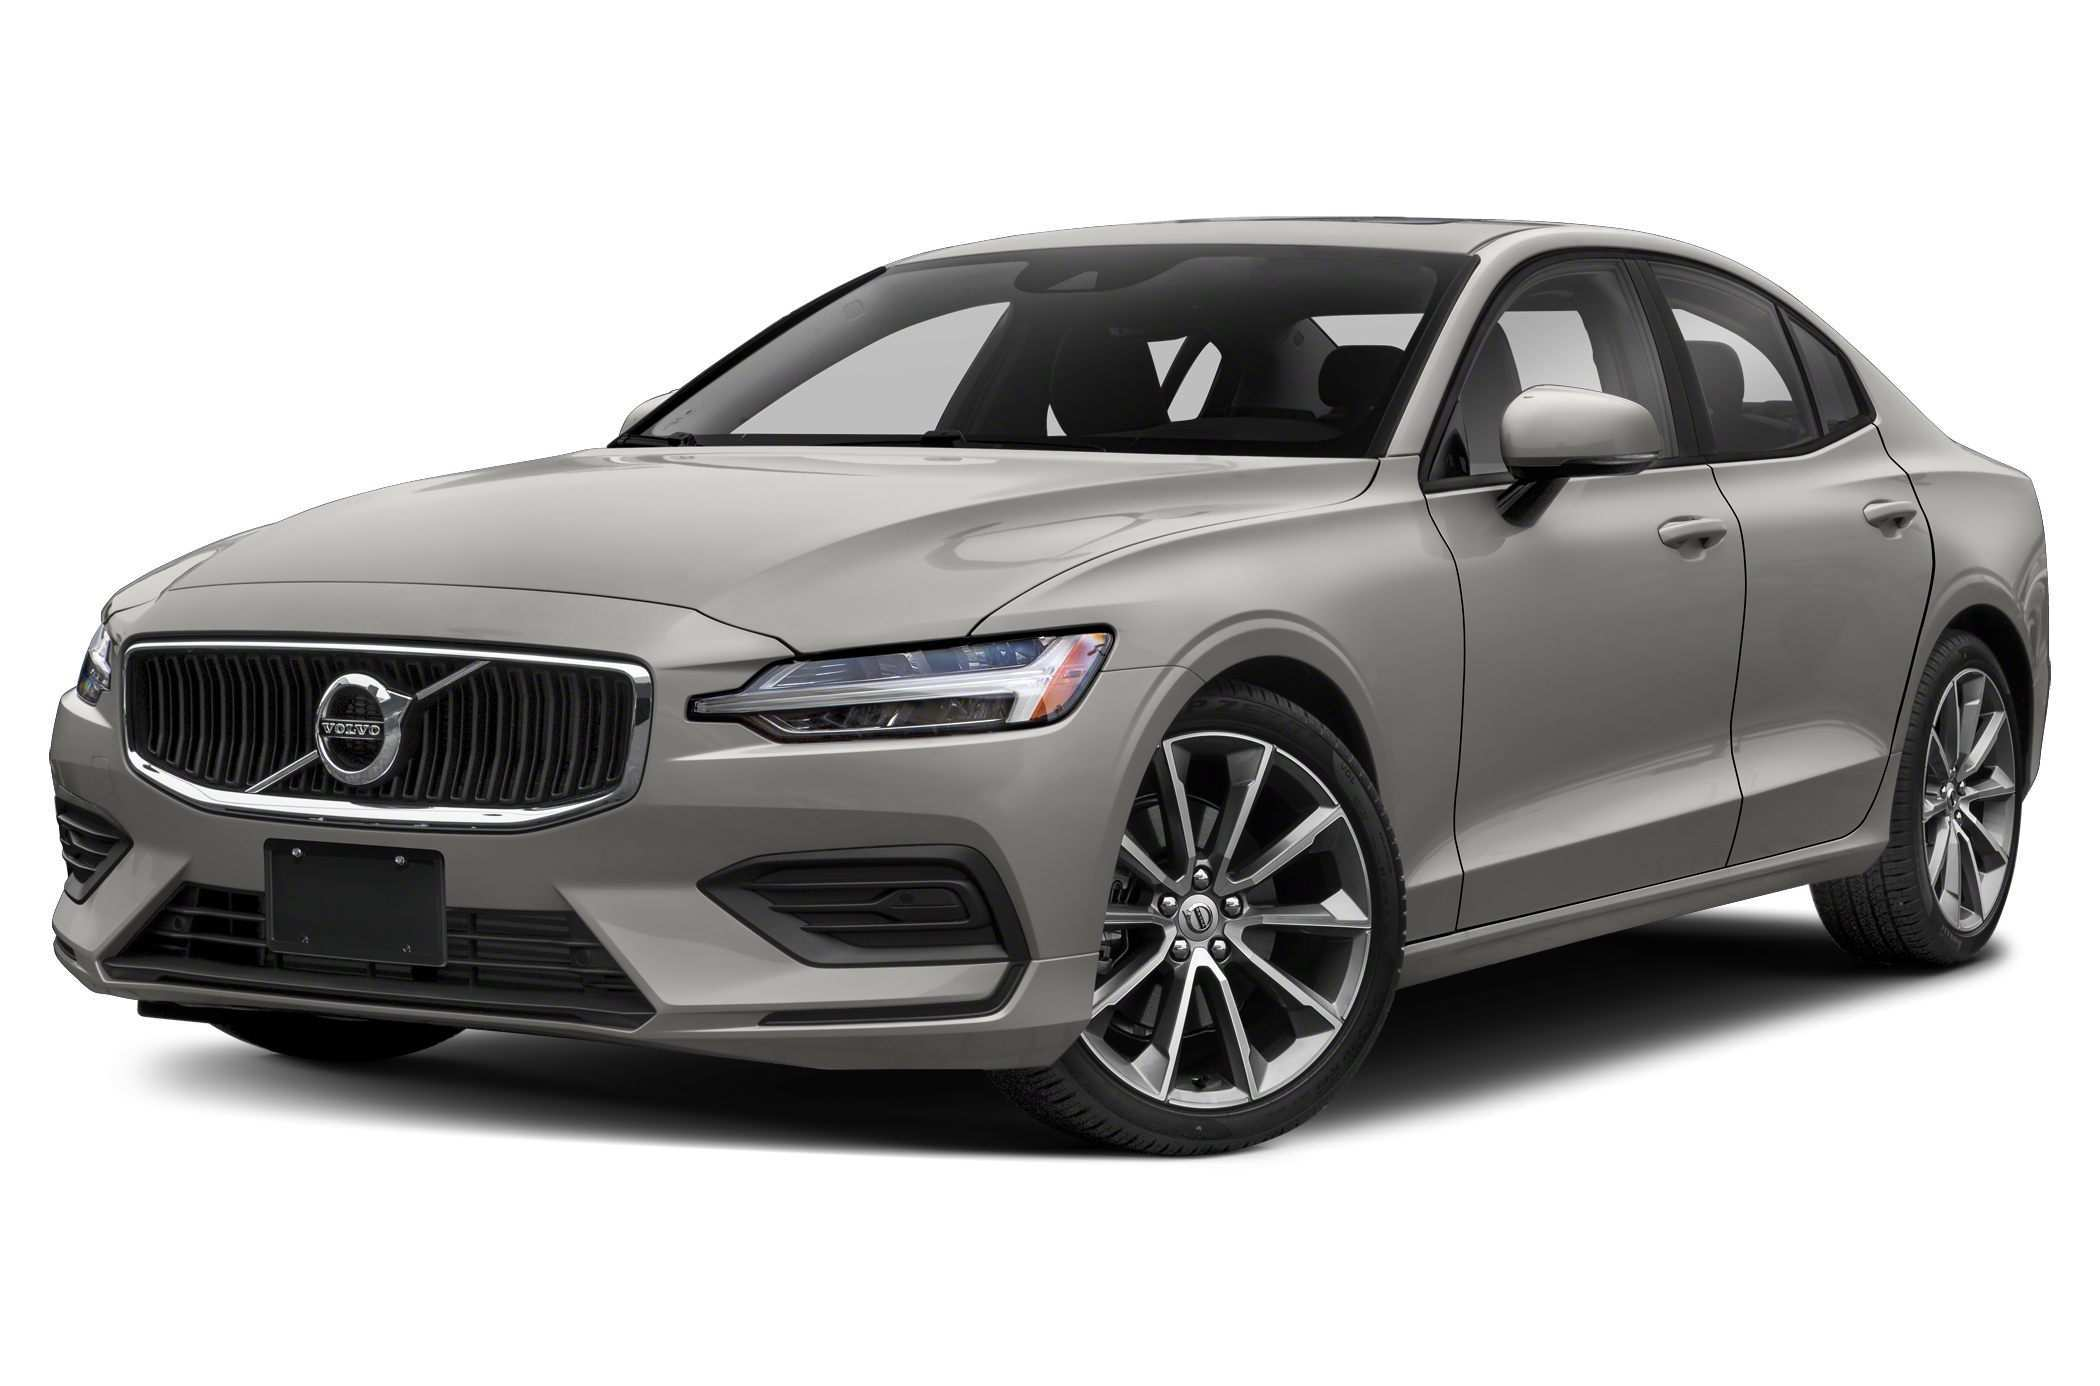 58 The 2019 Volvo 860 Specs Style with 2019 Volvo 860 Specs